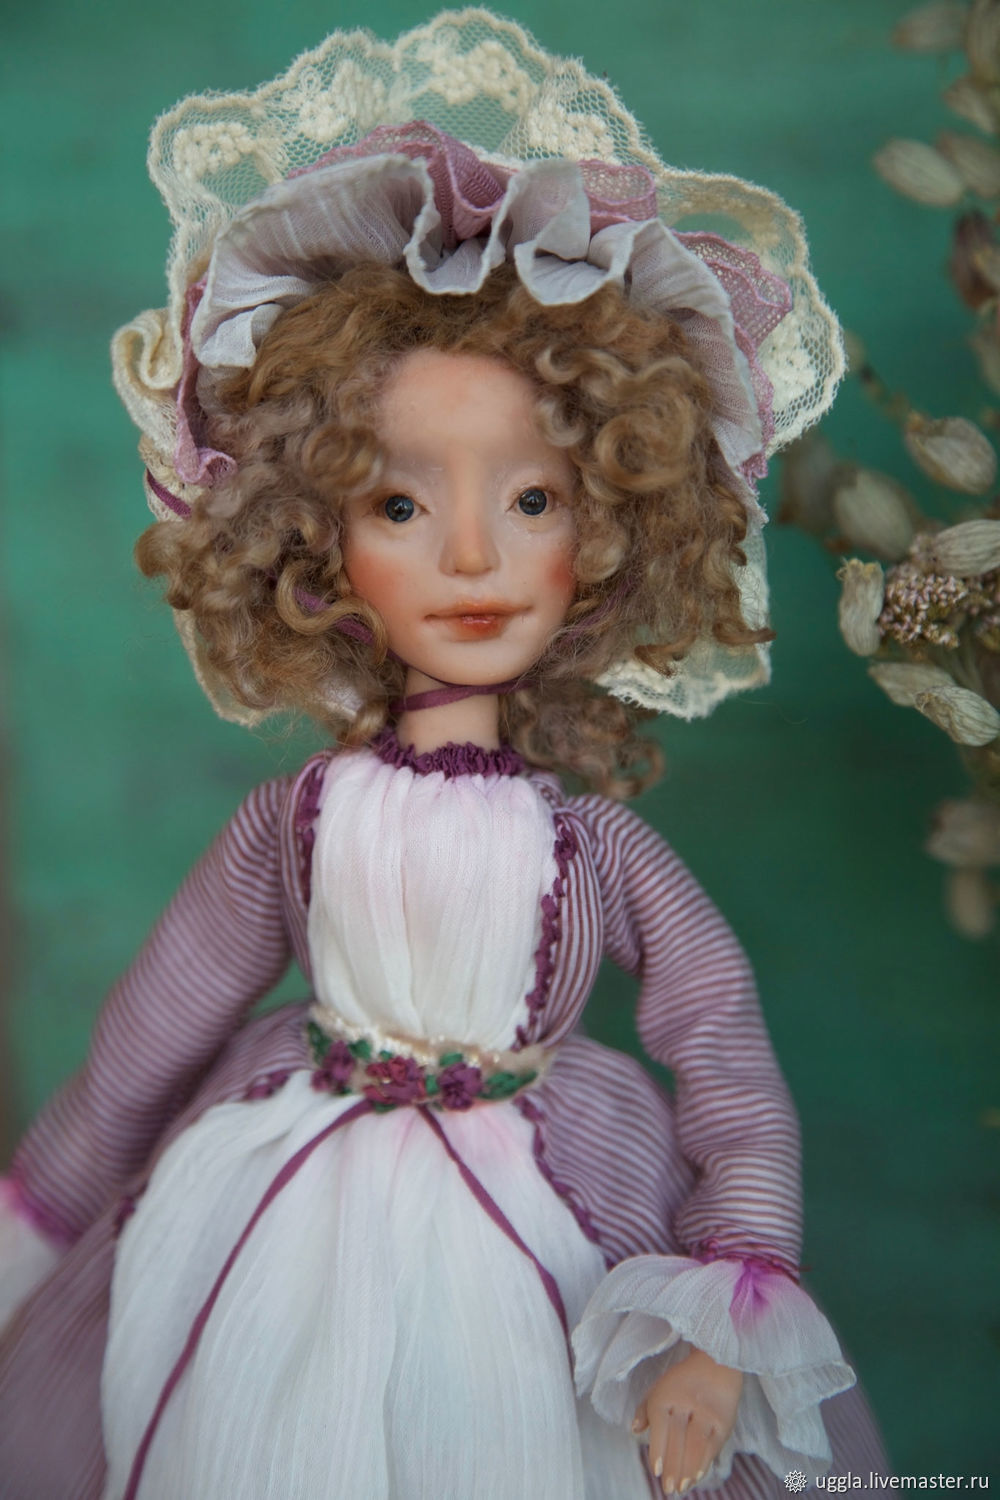 collectible art doll OOAK Art Doll interior doll totally hand made